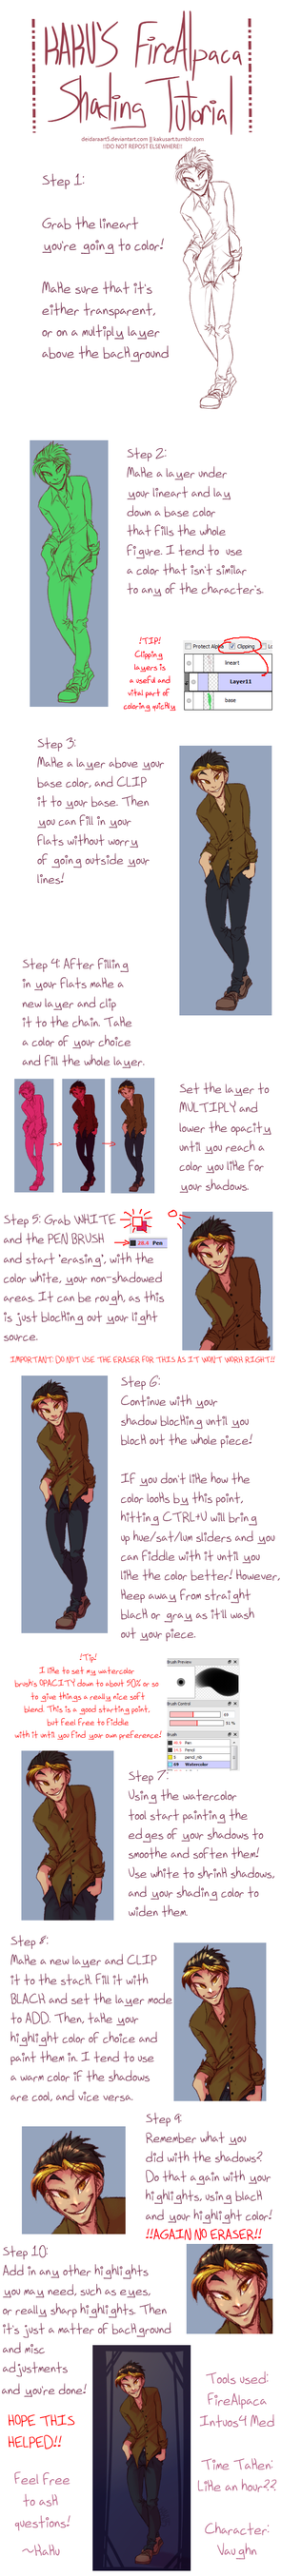 FireAlpaca Coloring Tutorial - The Kaku Way by deidaraart5